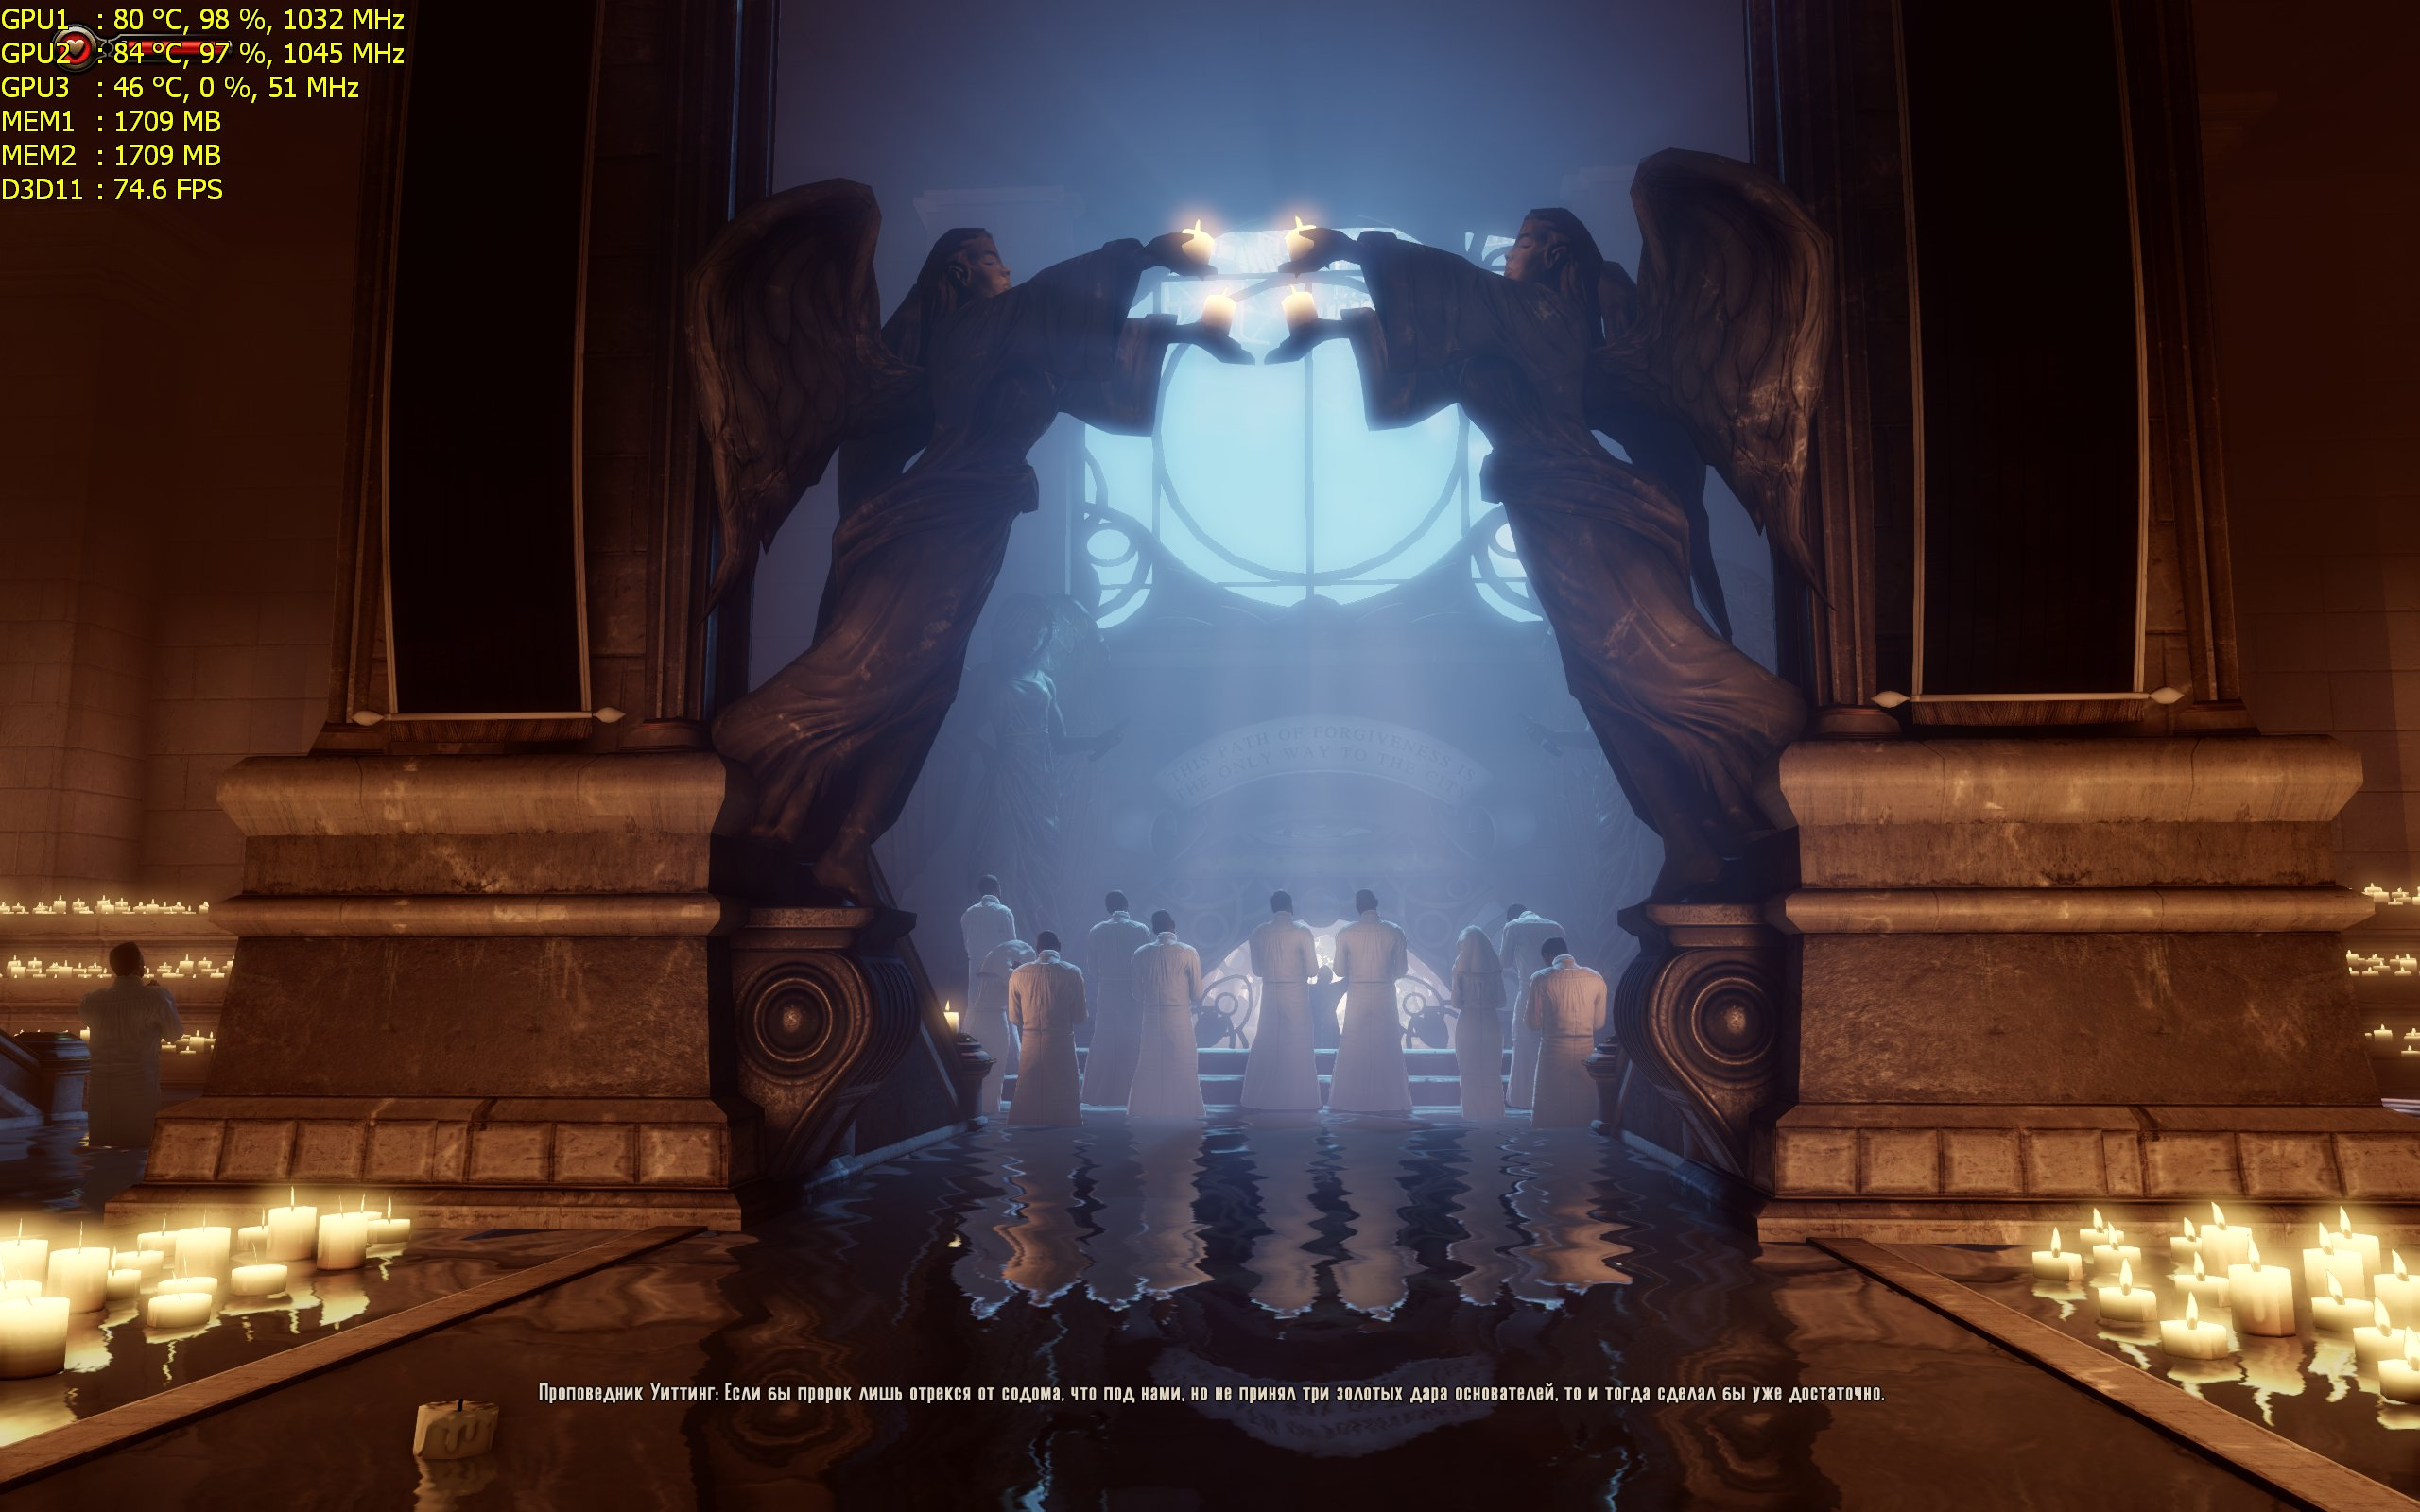 BioShockInfinite 2013_03_25_22_49_52_959